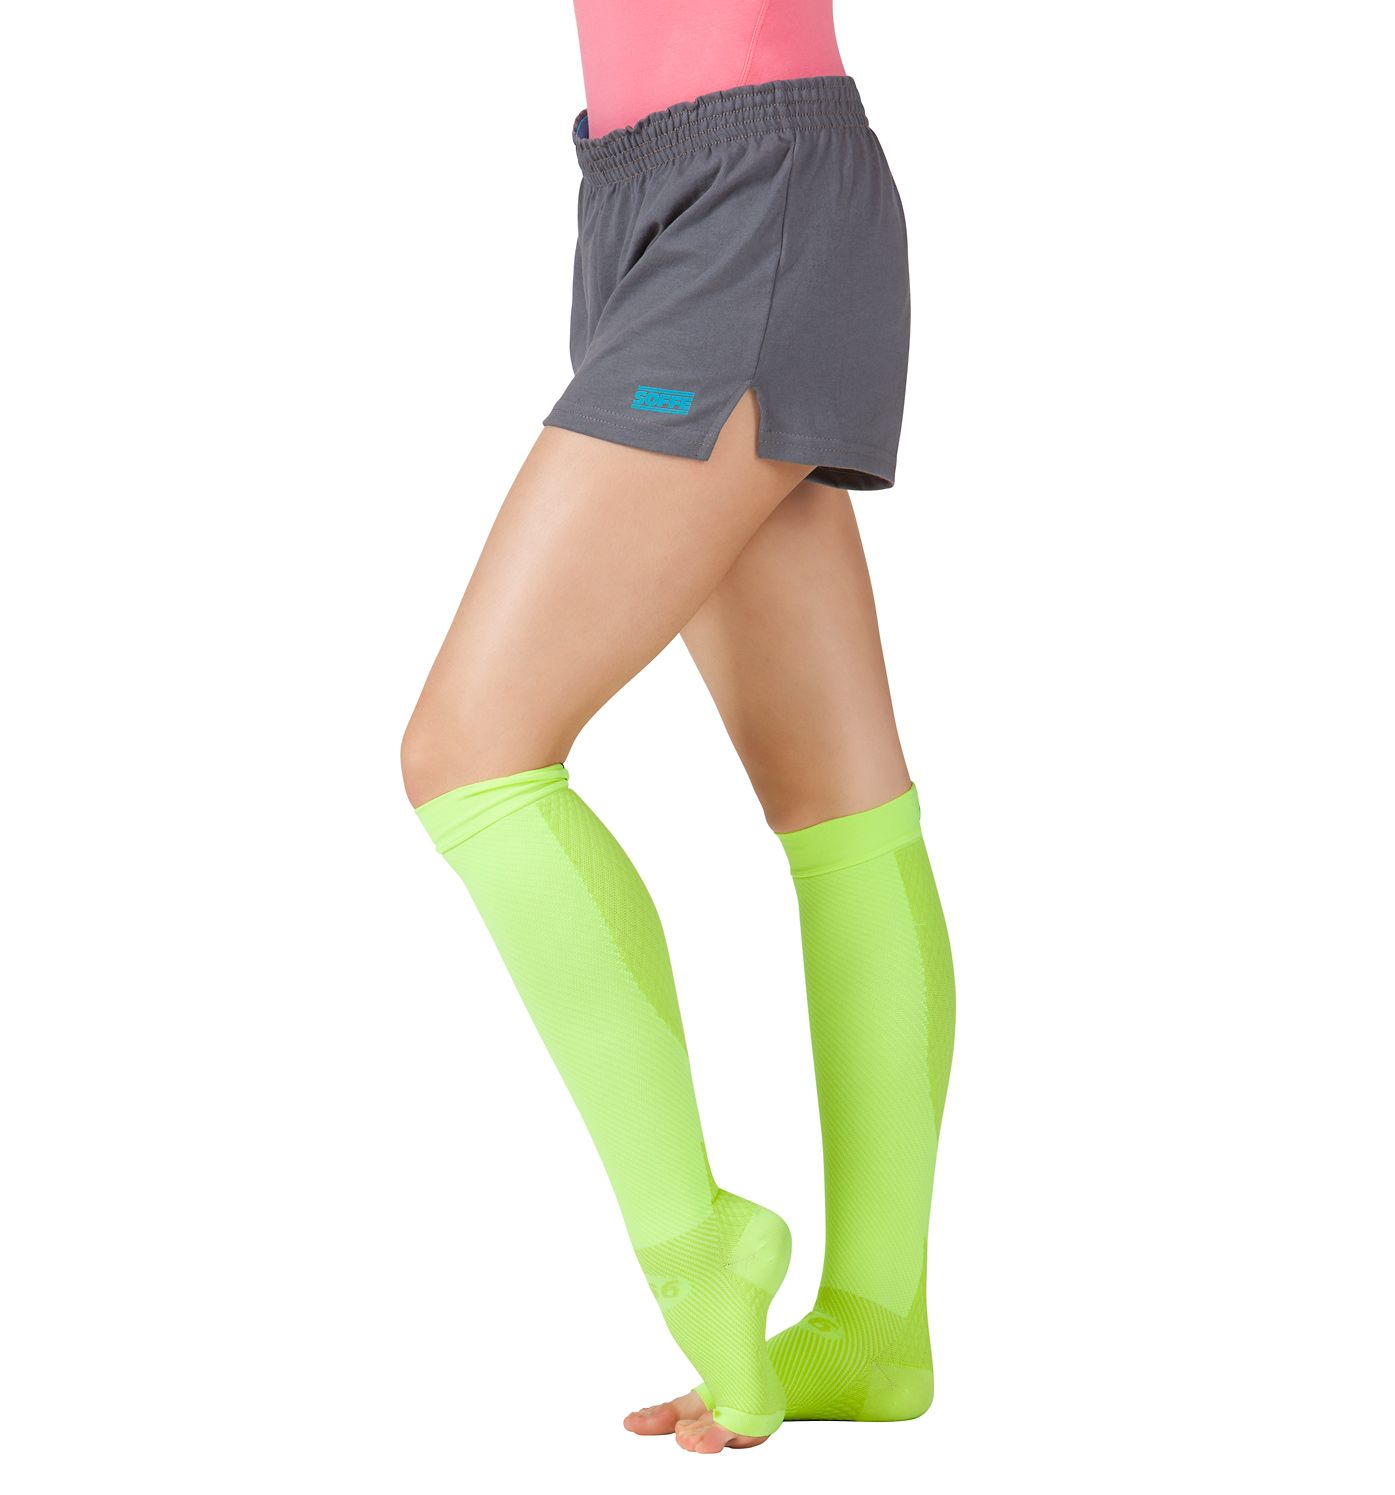 what is the purpose of calf sleeves